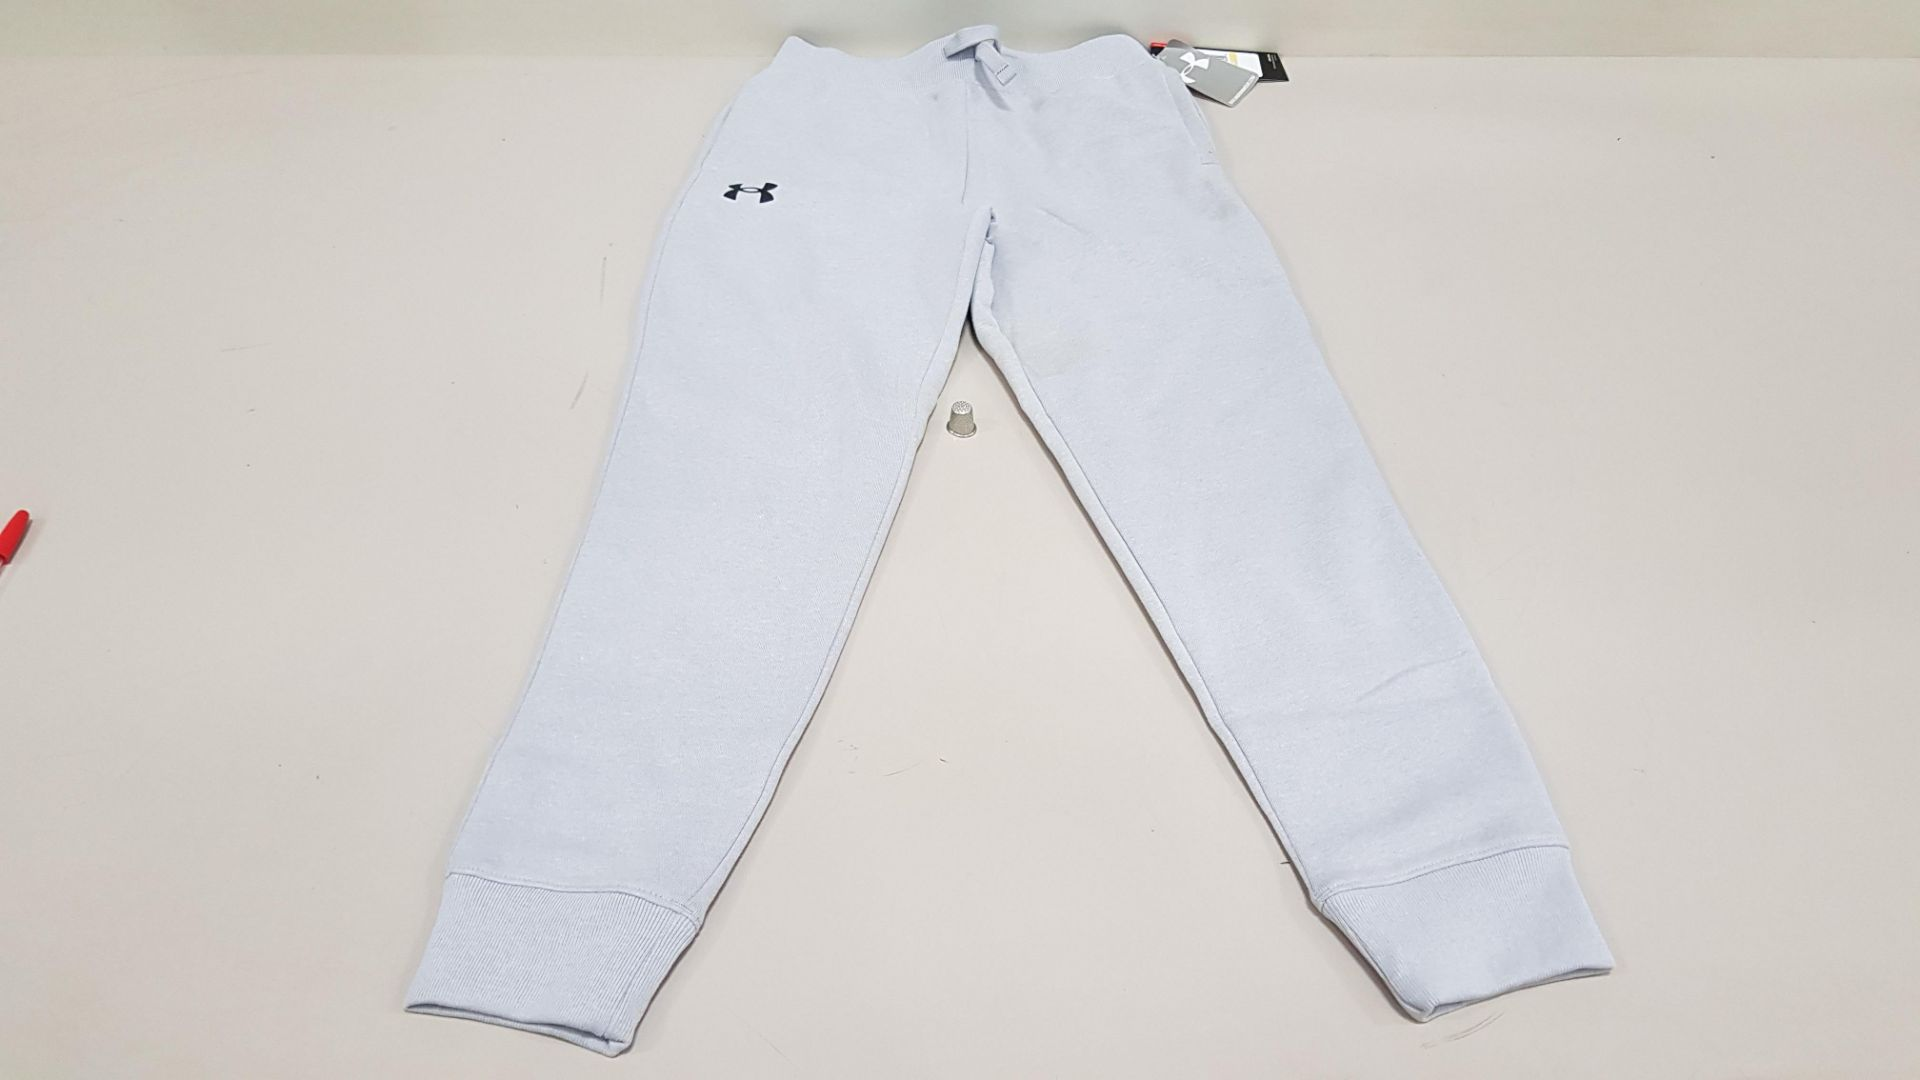 10 X BRAND NEW UNDER ARMOUR BOYS UNDER ARMOUR PANTS SIZE YXL/TG/EG